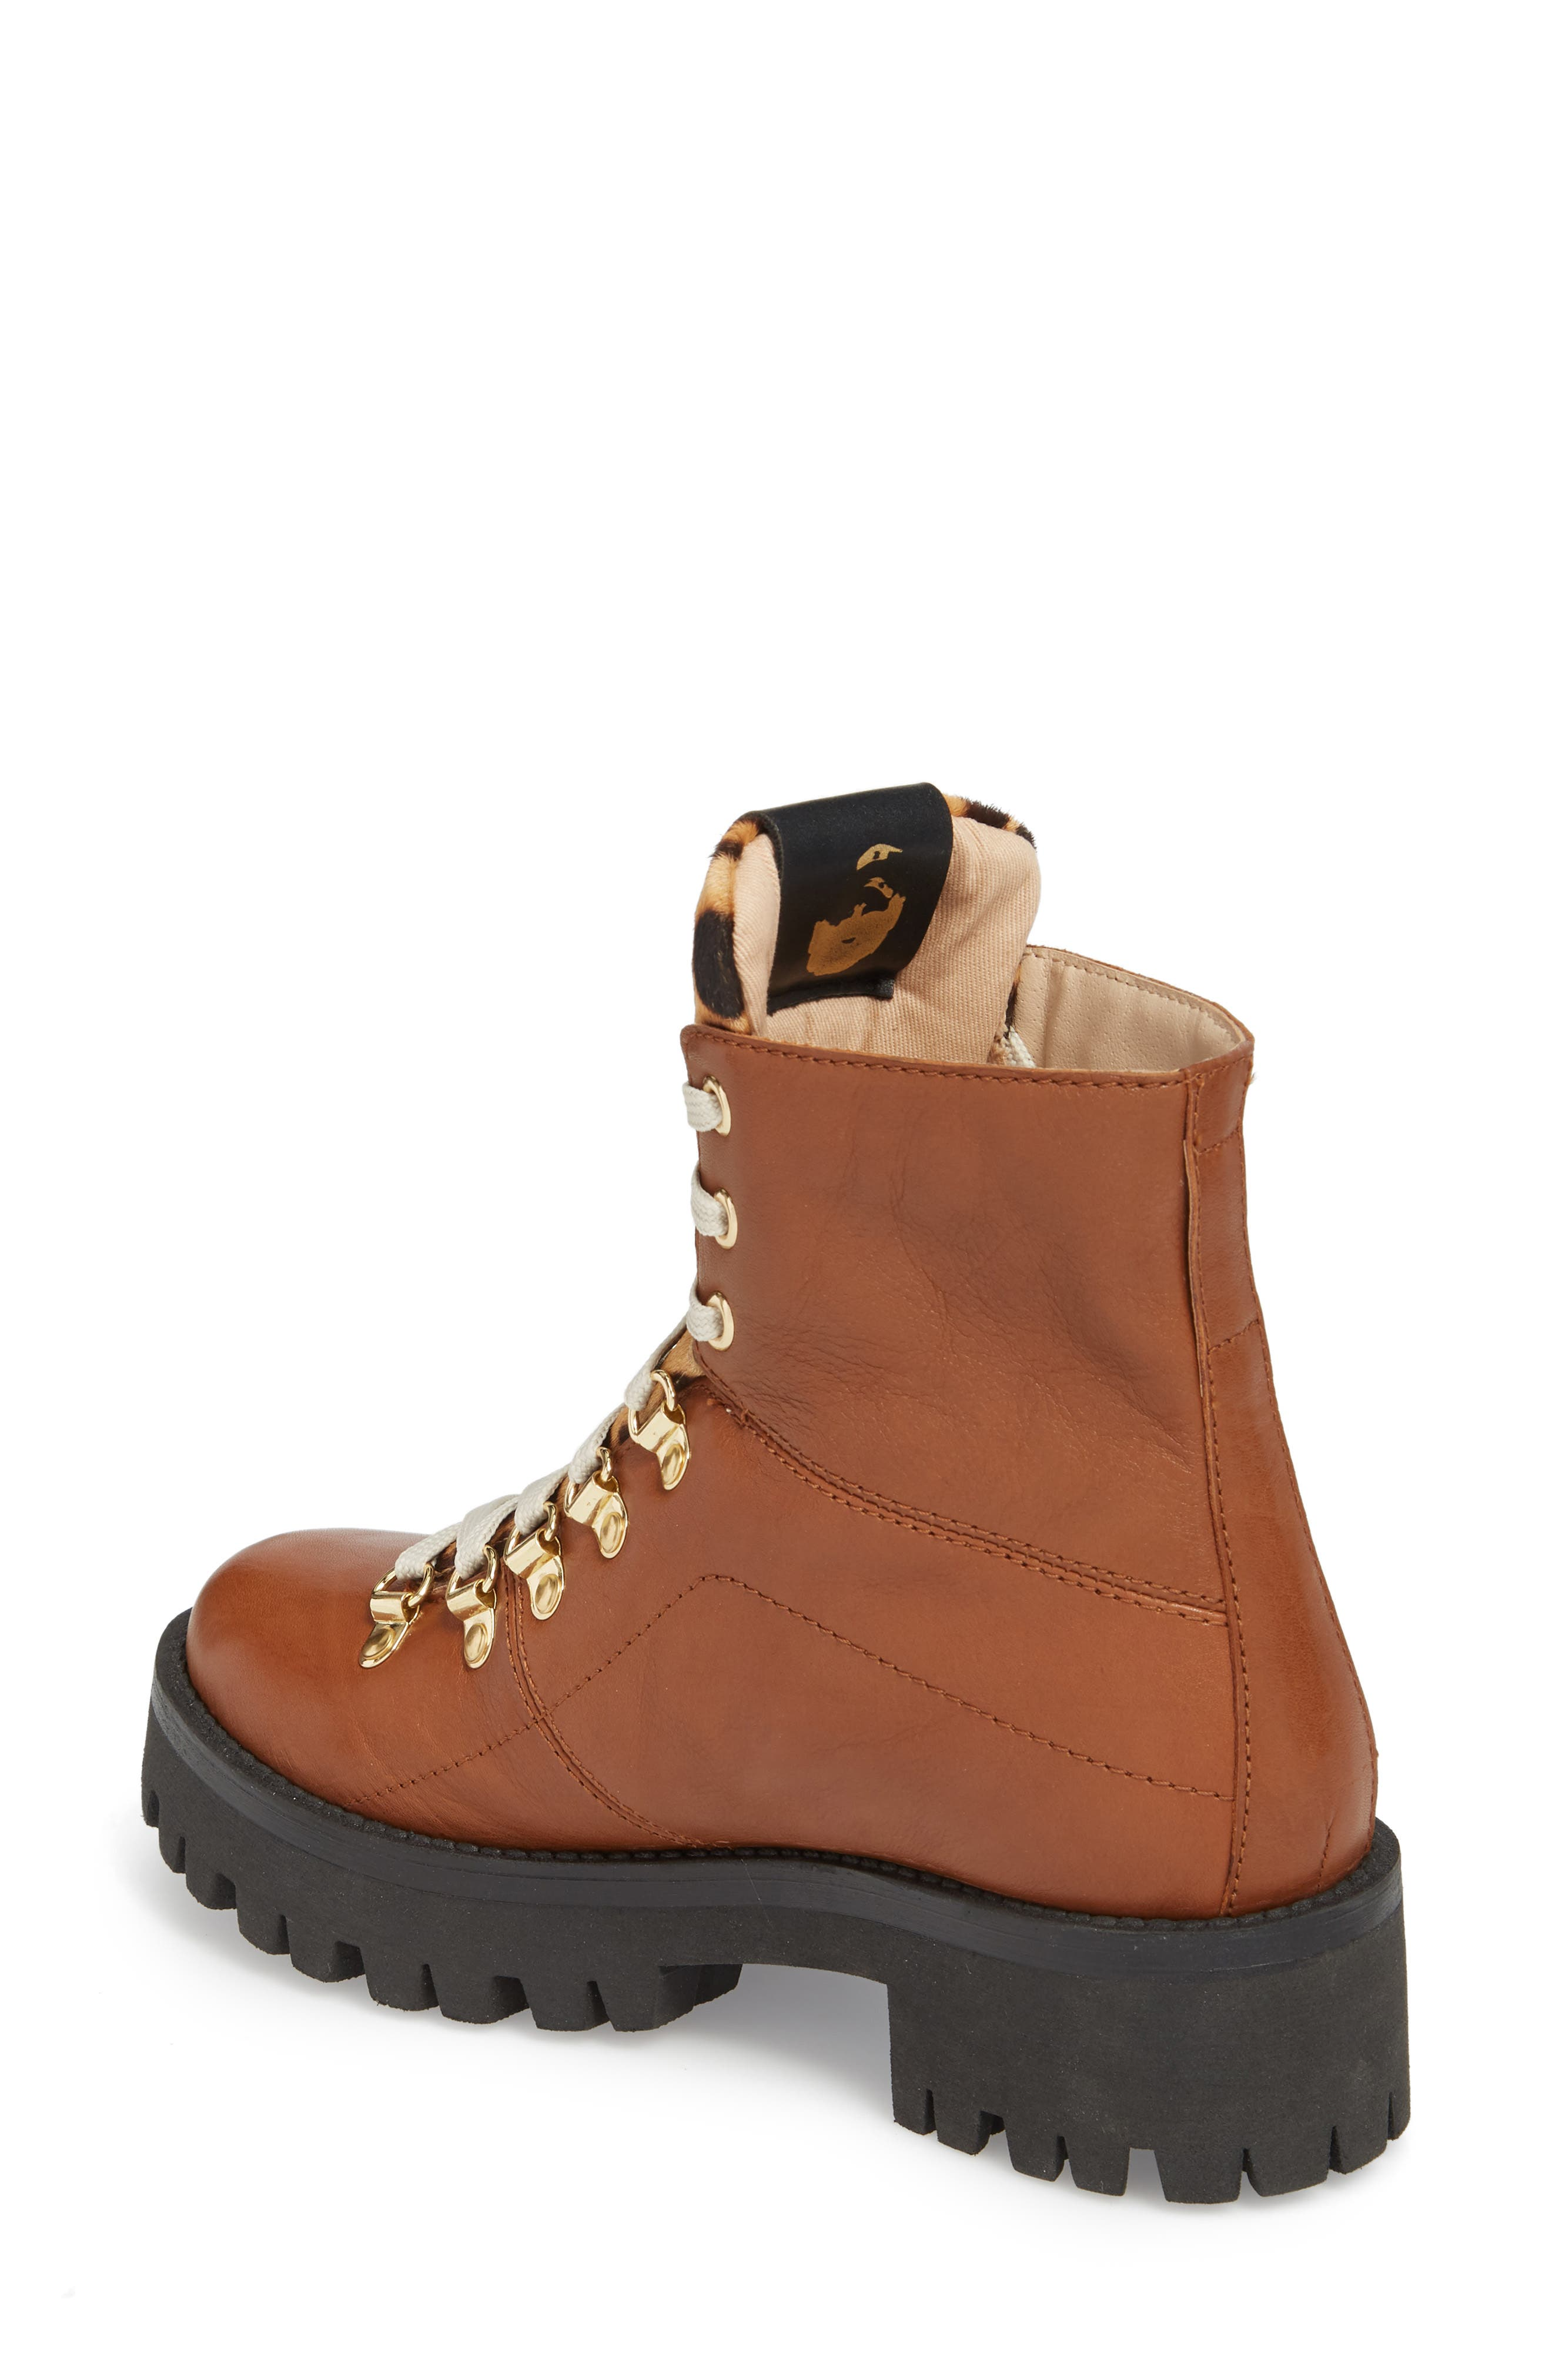 Boom Hiker Boot with Genuine Calf Hair,                             Alternate thumbnail 2, color,                             200